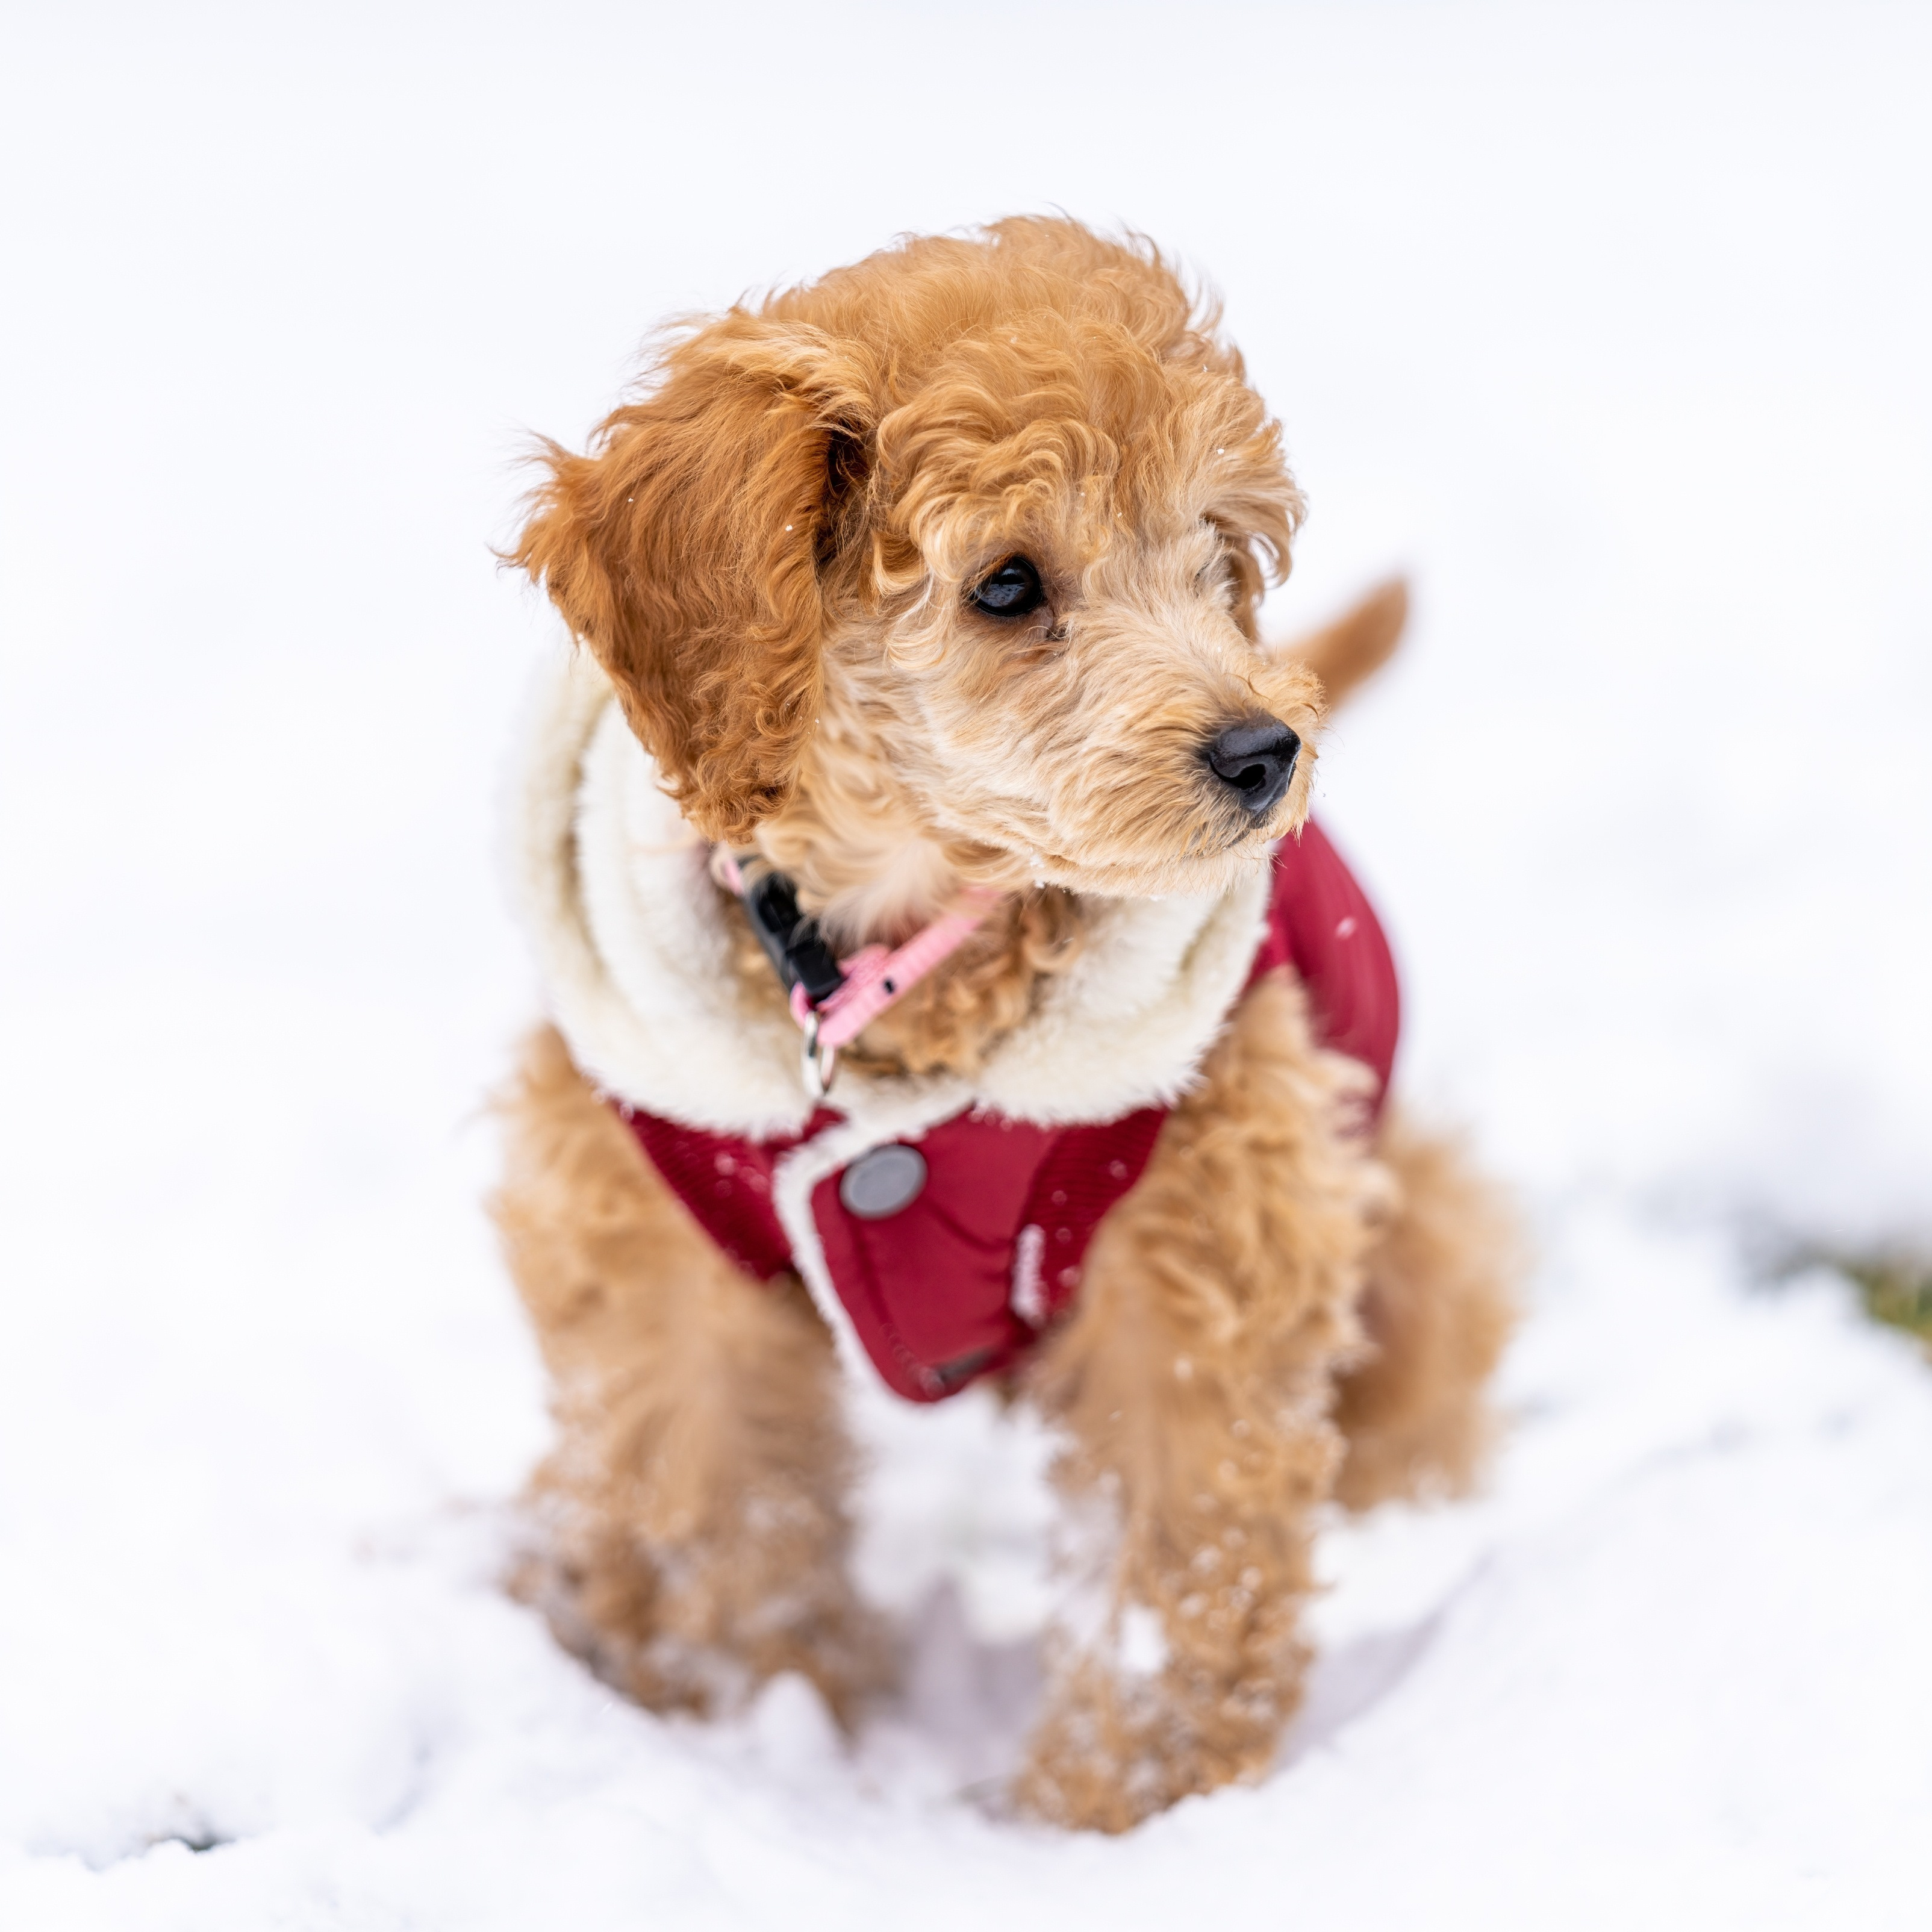 iPad Wallpapers Pet Puppy Walking on Snow Winter iPad Wallpaper 3208x3208 px